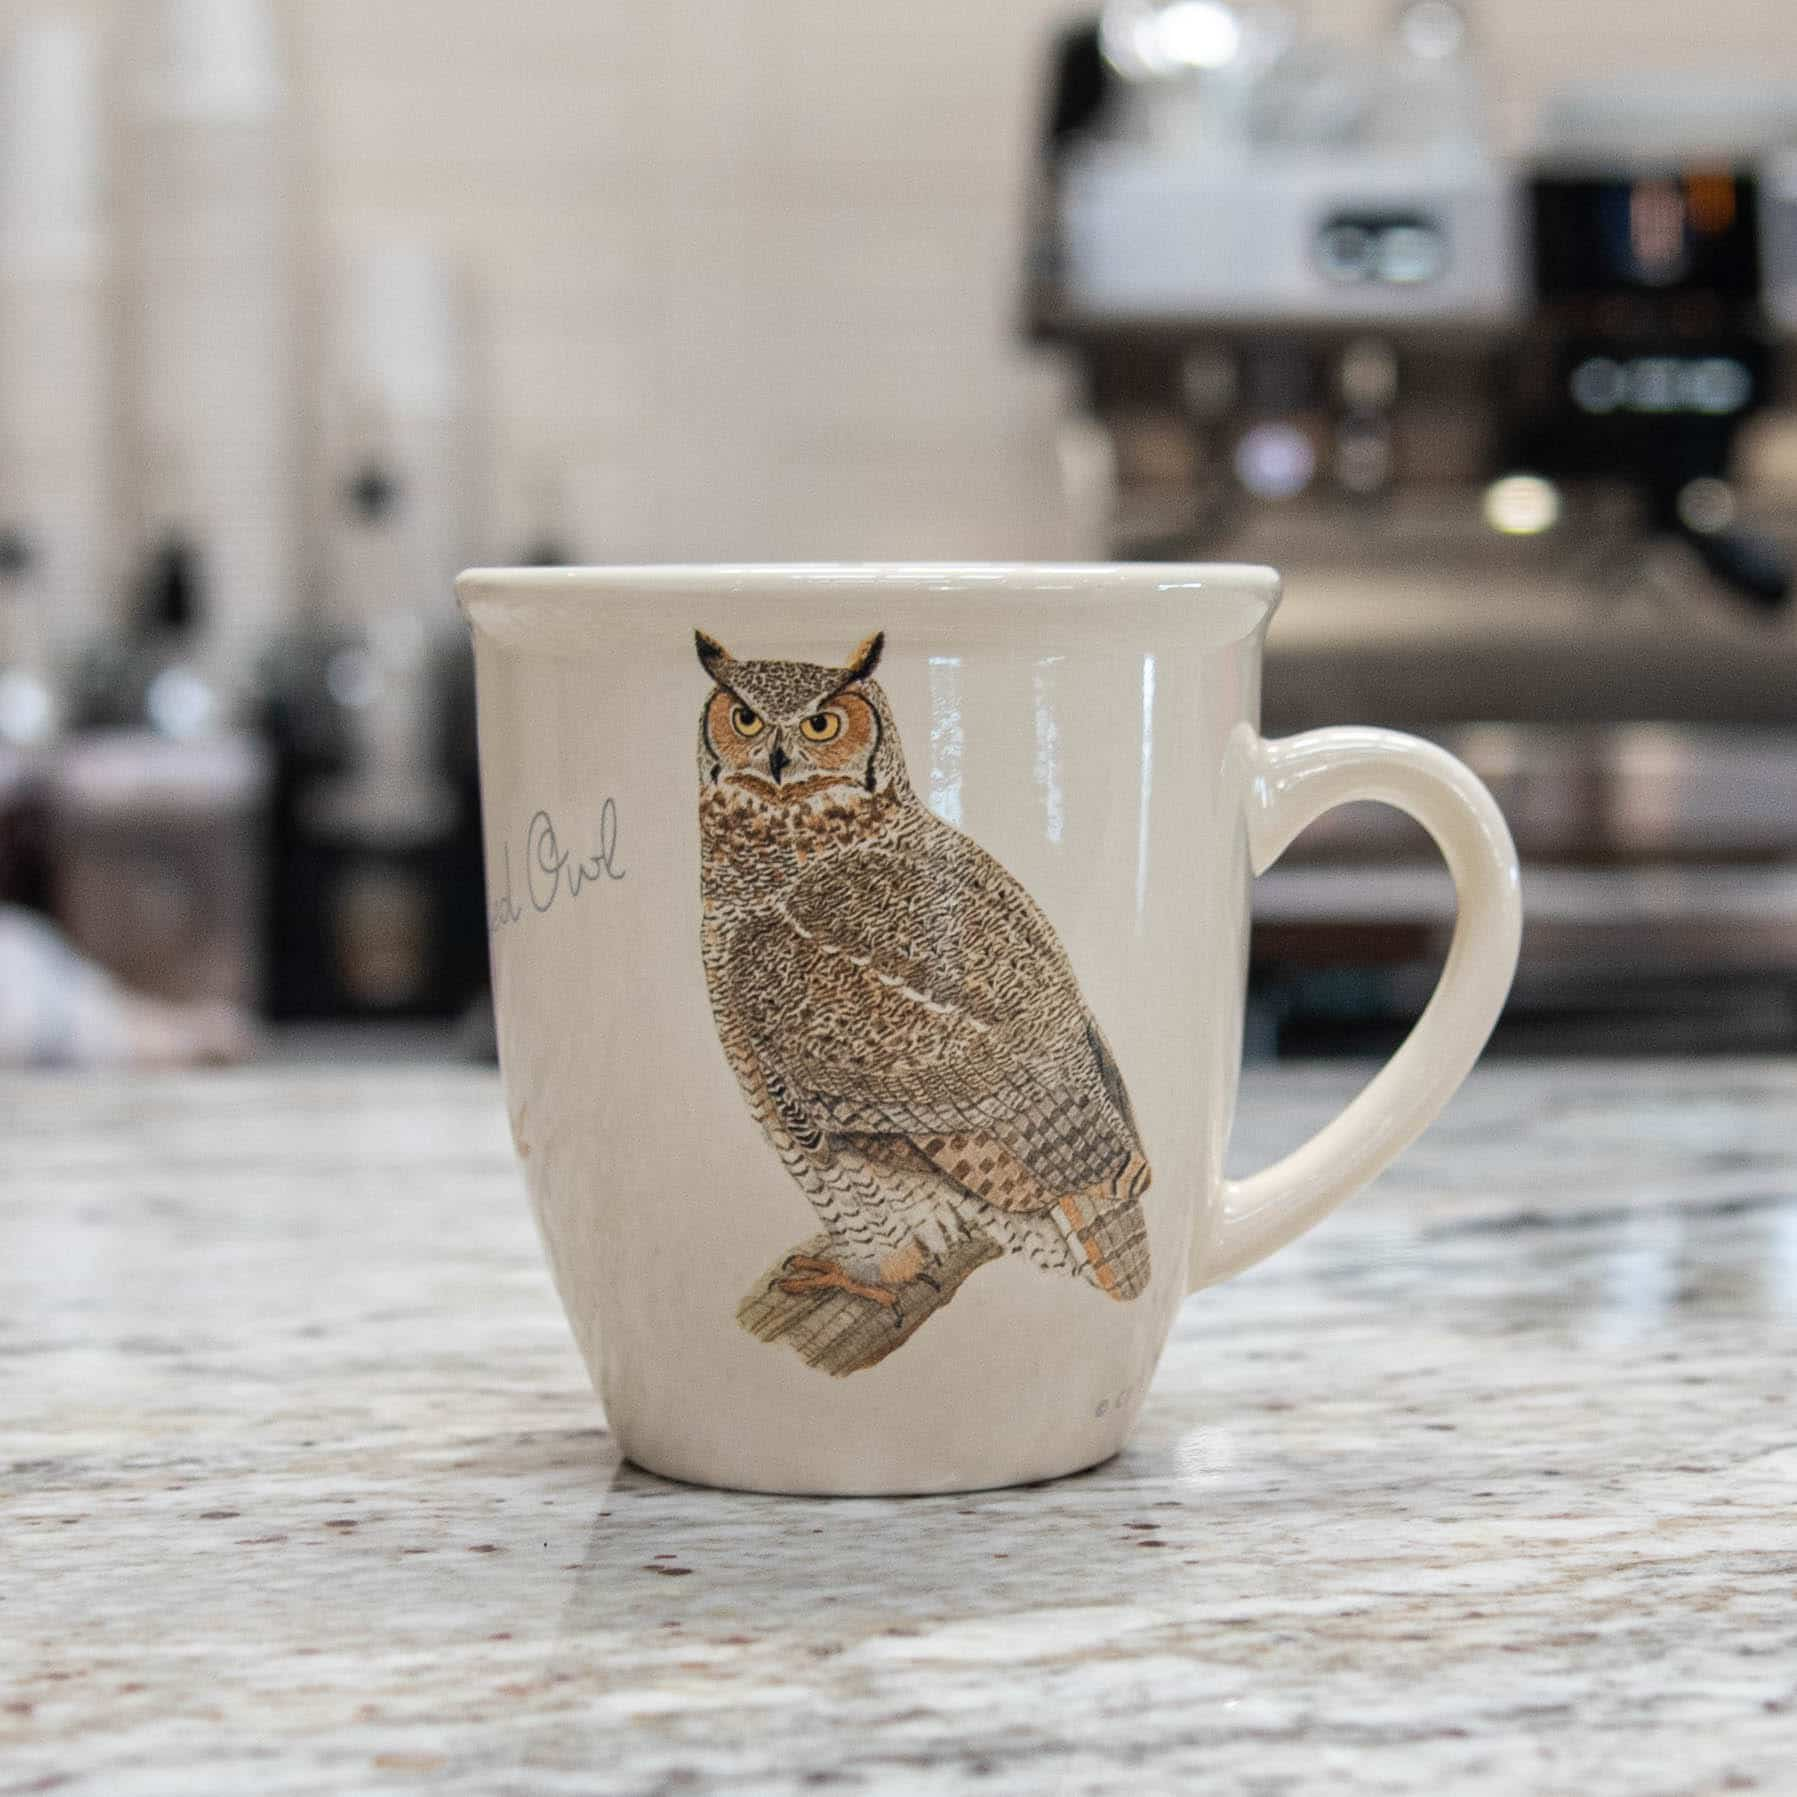 Bird Mug – Great Horned Owl